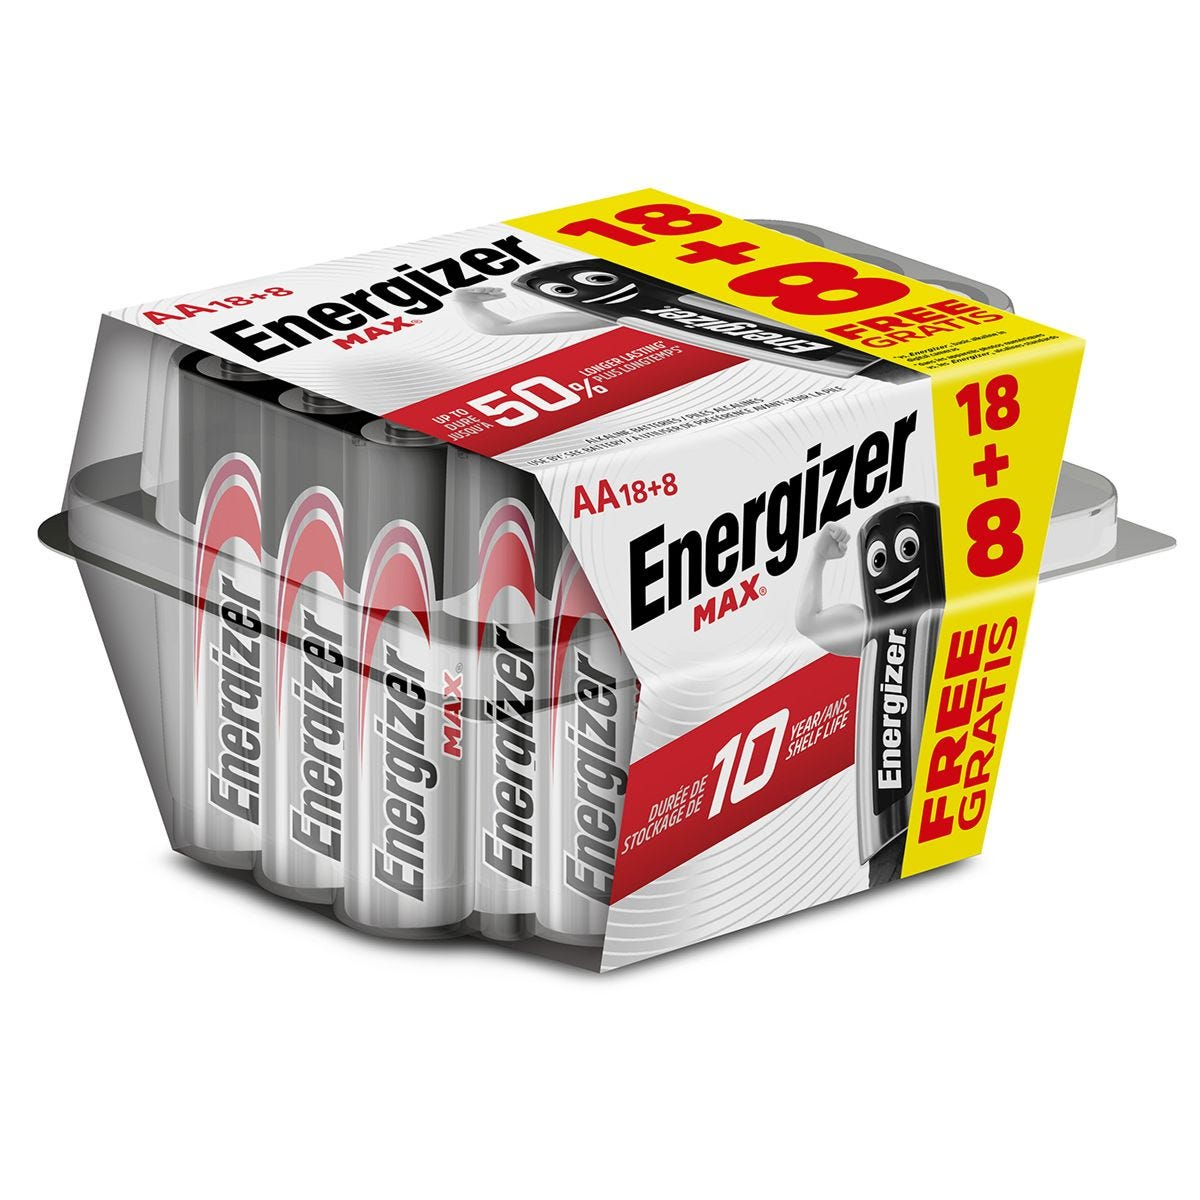 Energizer Max AA Batteries - 18 + 8 Pack